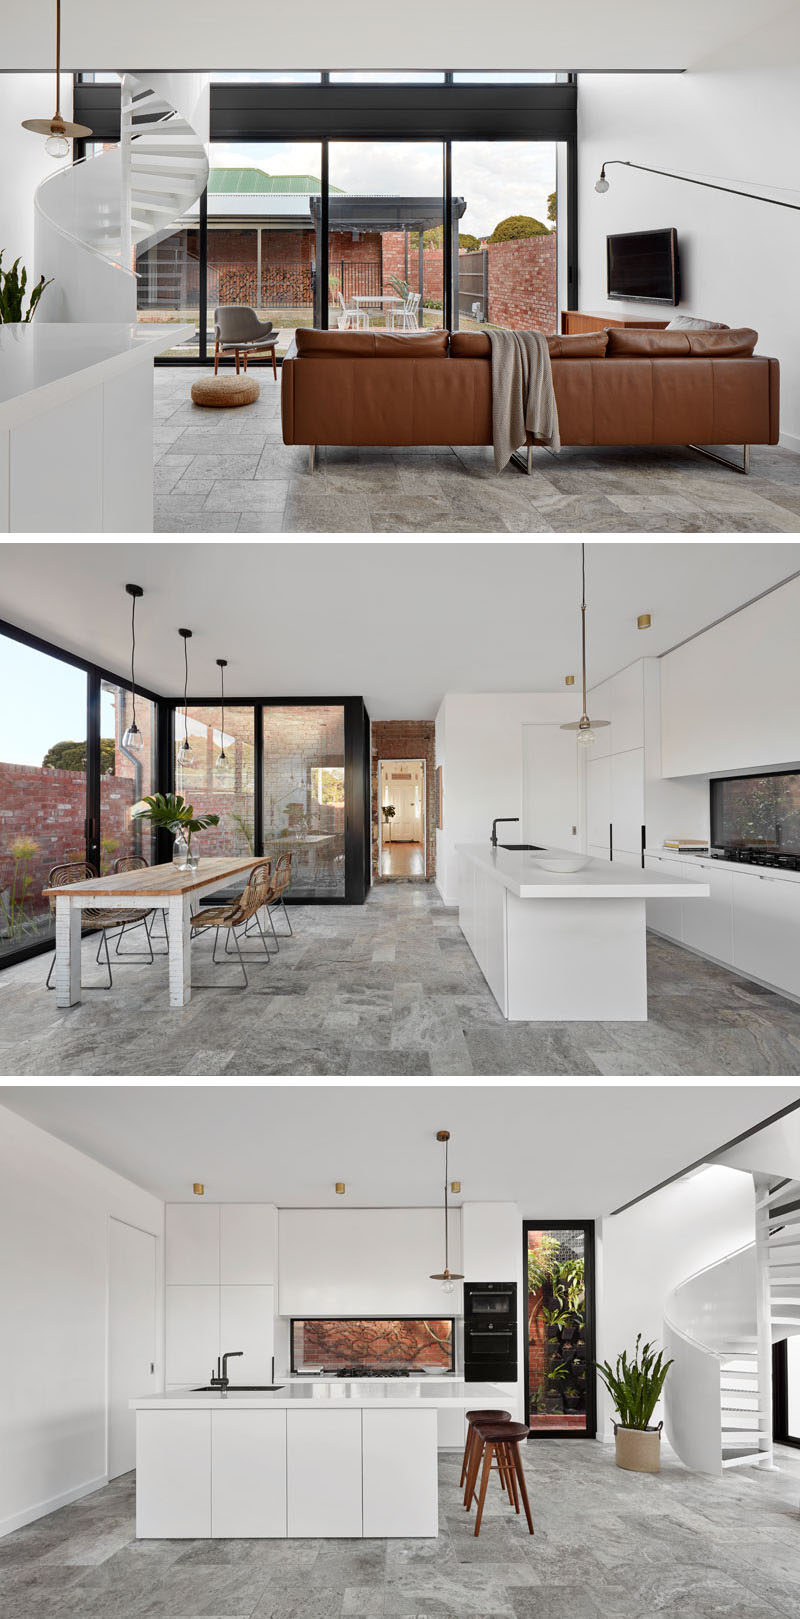 The bright white ground floor of this modern house extension has been designed as an open plan space with views of the backyard through the double height wall of windows. In the kitchen white cabinets have been paired with a Corian White Jasmine countertop. #LivingRoom #WhiteKitchen #ModernInterior